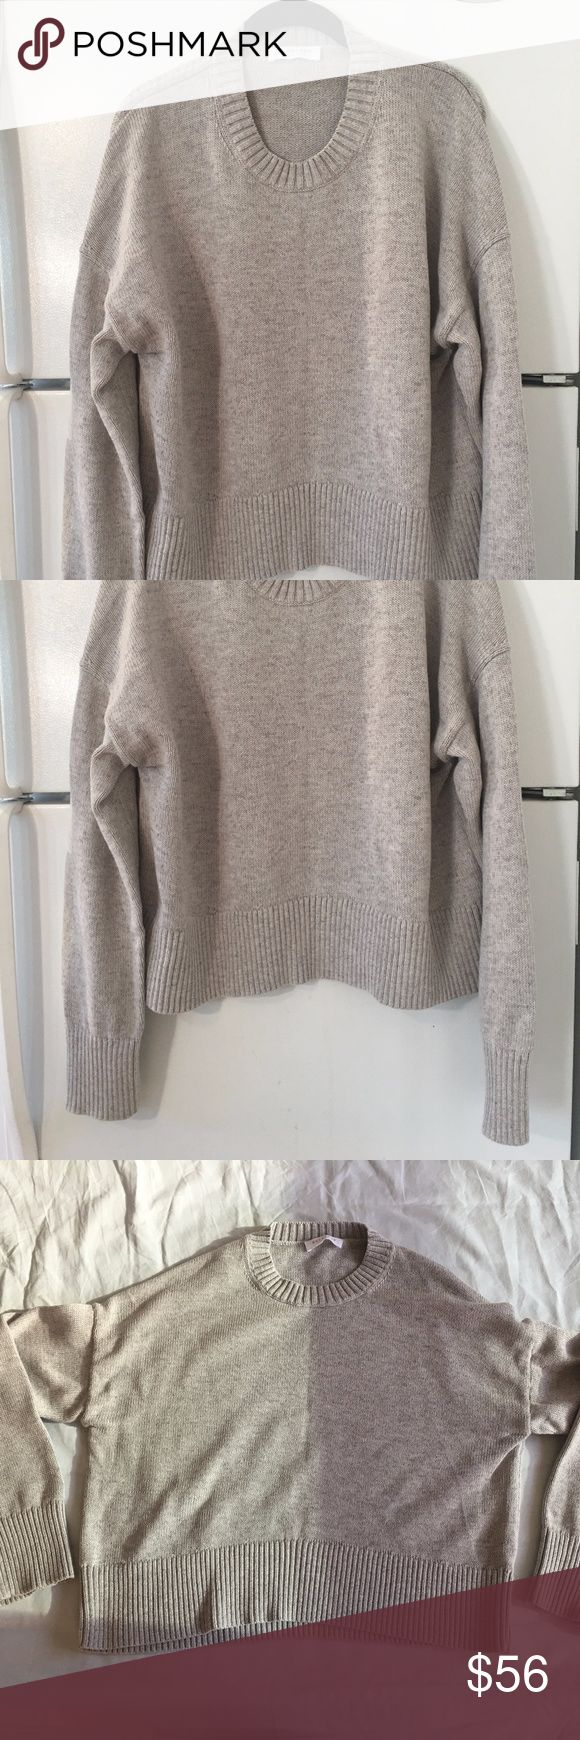 Everlane Gray Cotton Thick Crew Sweater Size Large A thick slightly oversized crewneck sweater made in a substantial yet breathable knit that easily transitions from warm days to cool nights.  Relaxed fit.  Measurements: 49 inch bust, 22 inch overall length  Material: 100% cotton  Hand wash cold, lay flat to dry  Made in Dongguan, China Everlane Sweaters Crew & Scoop Necks